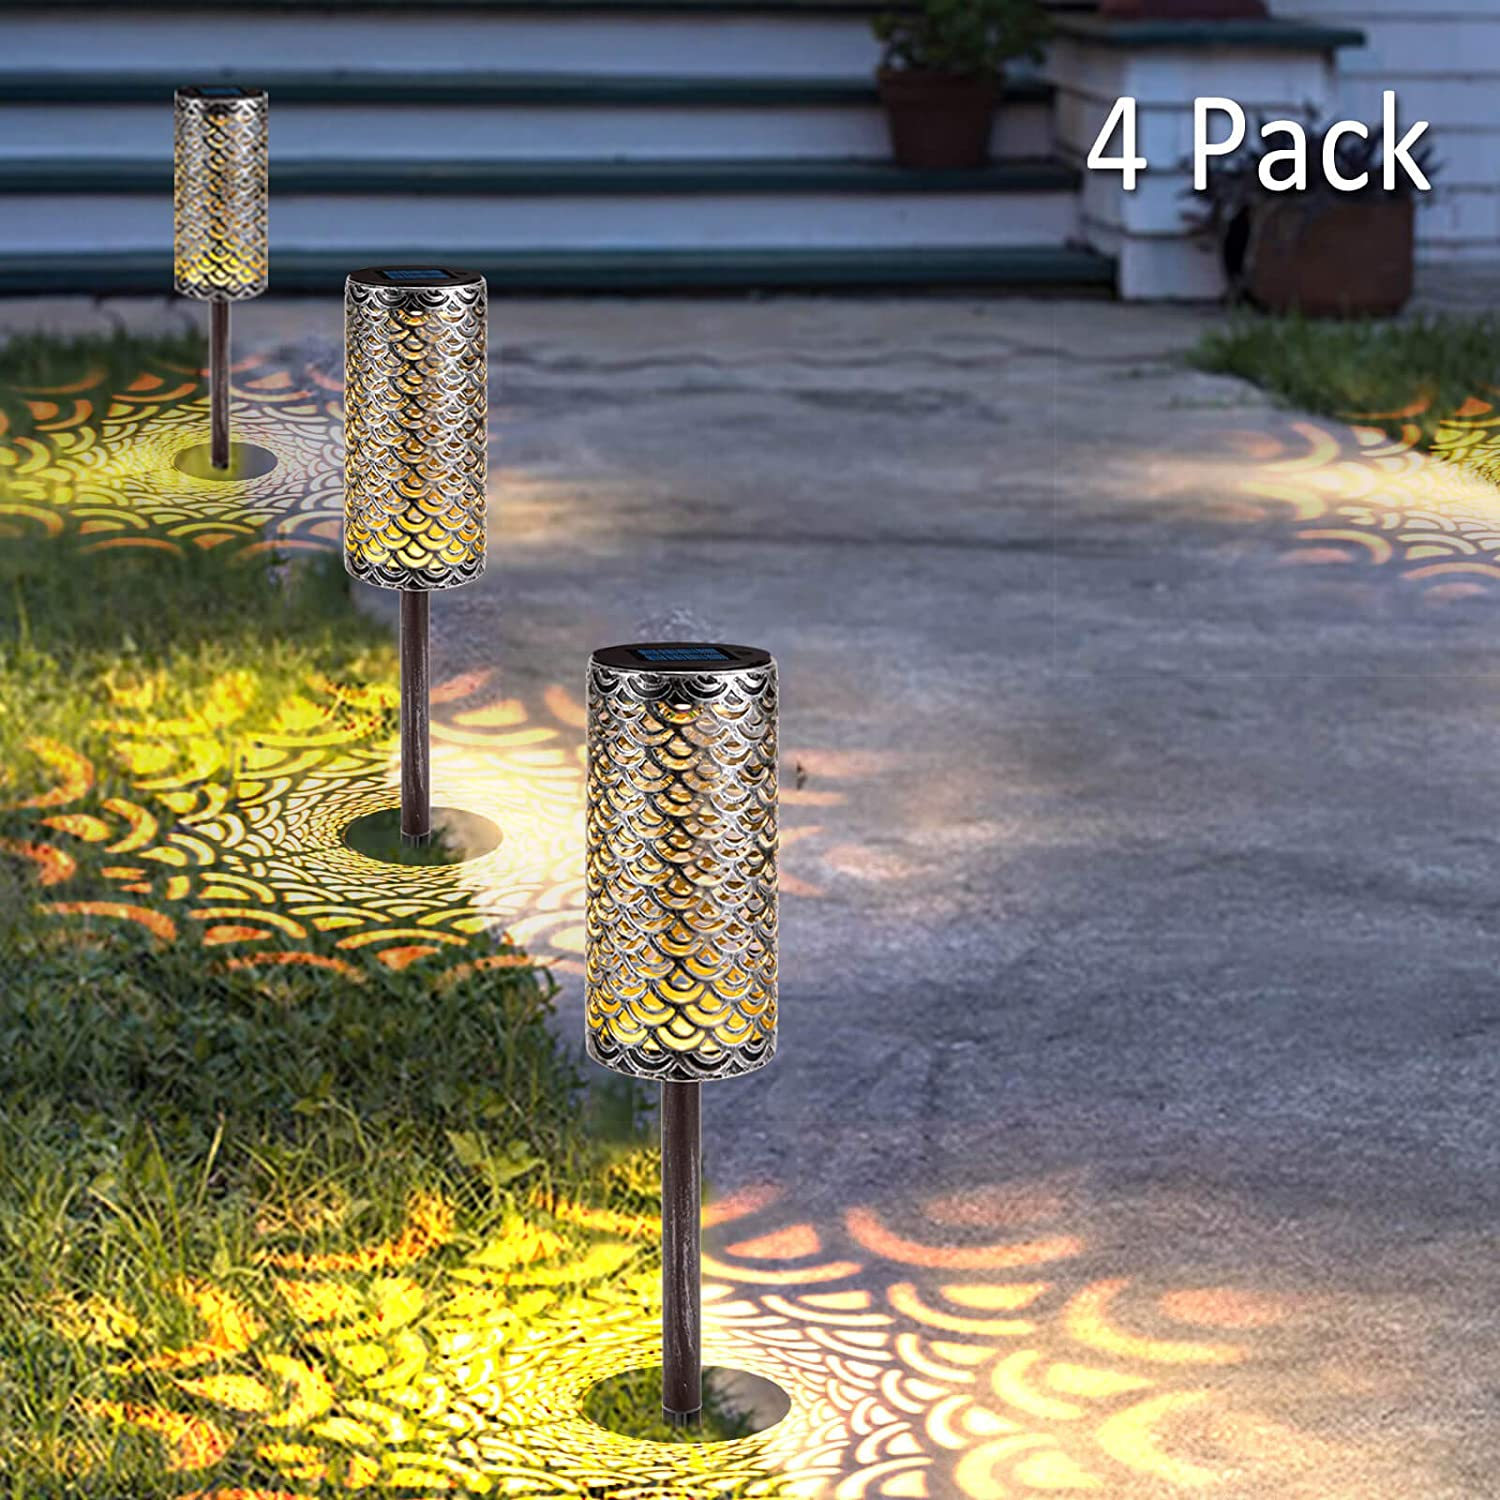 Solar Path Lights Metal Lanterns Pathway Auto On/Off Bright Warm White LED Outdoor Waterproof Landscape Lighting for ?Patio, Garden, Yard, Walkway (4 Pack)